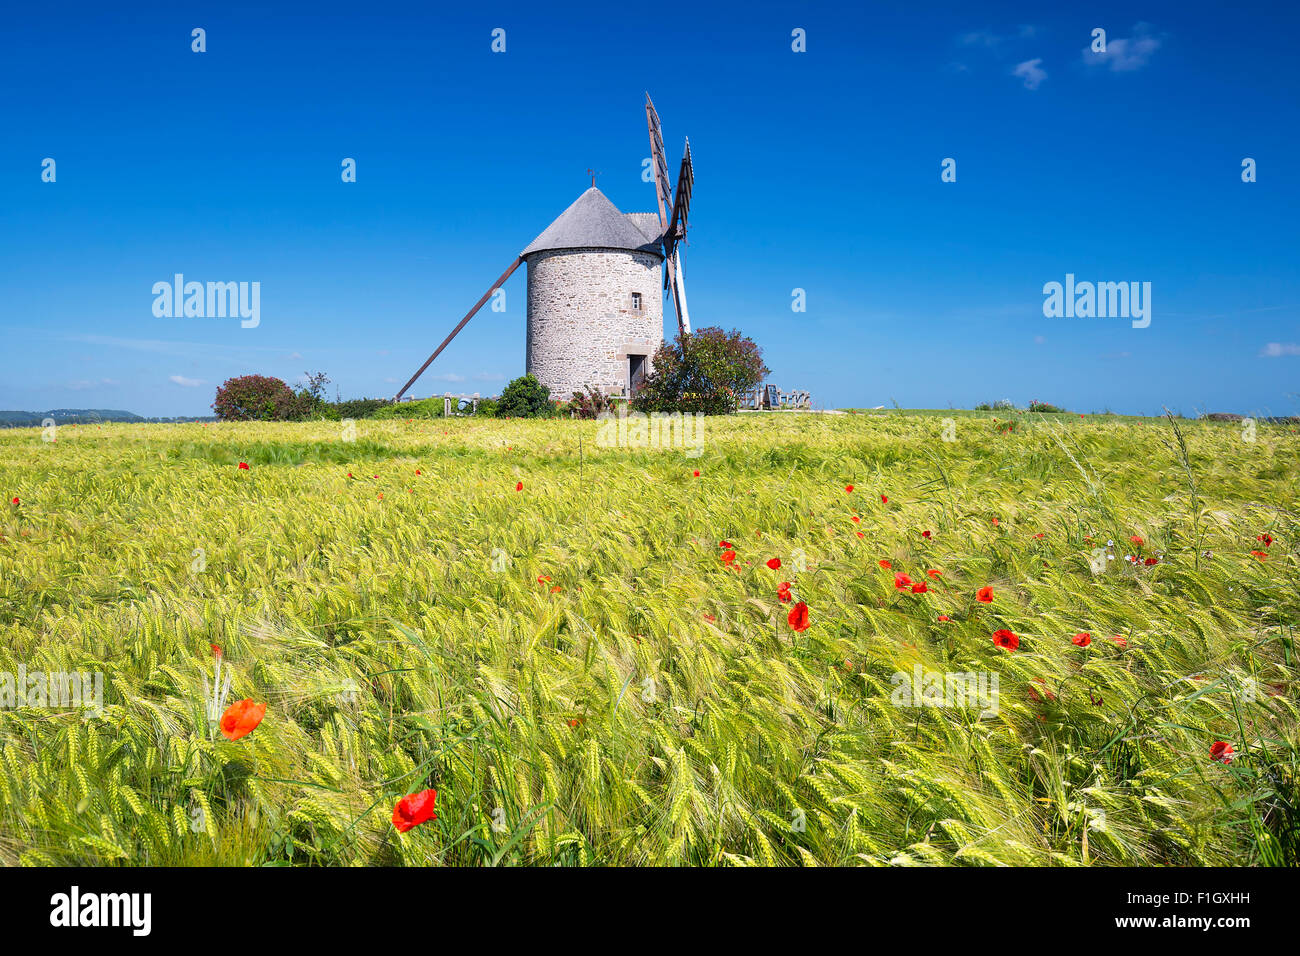 View of Windmill and wheat field, France, Europe. - Stock Image